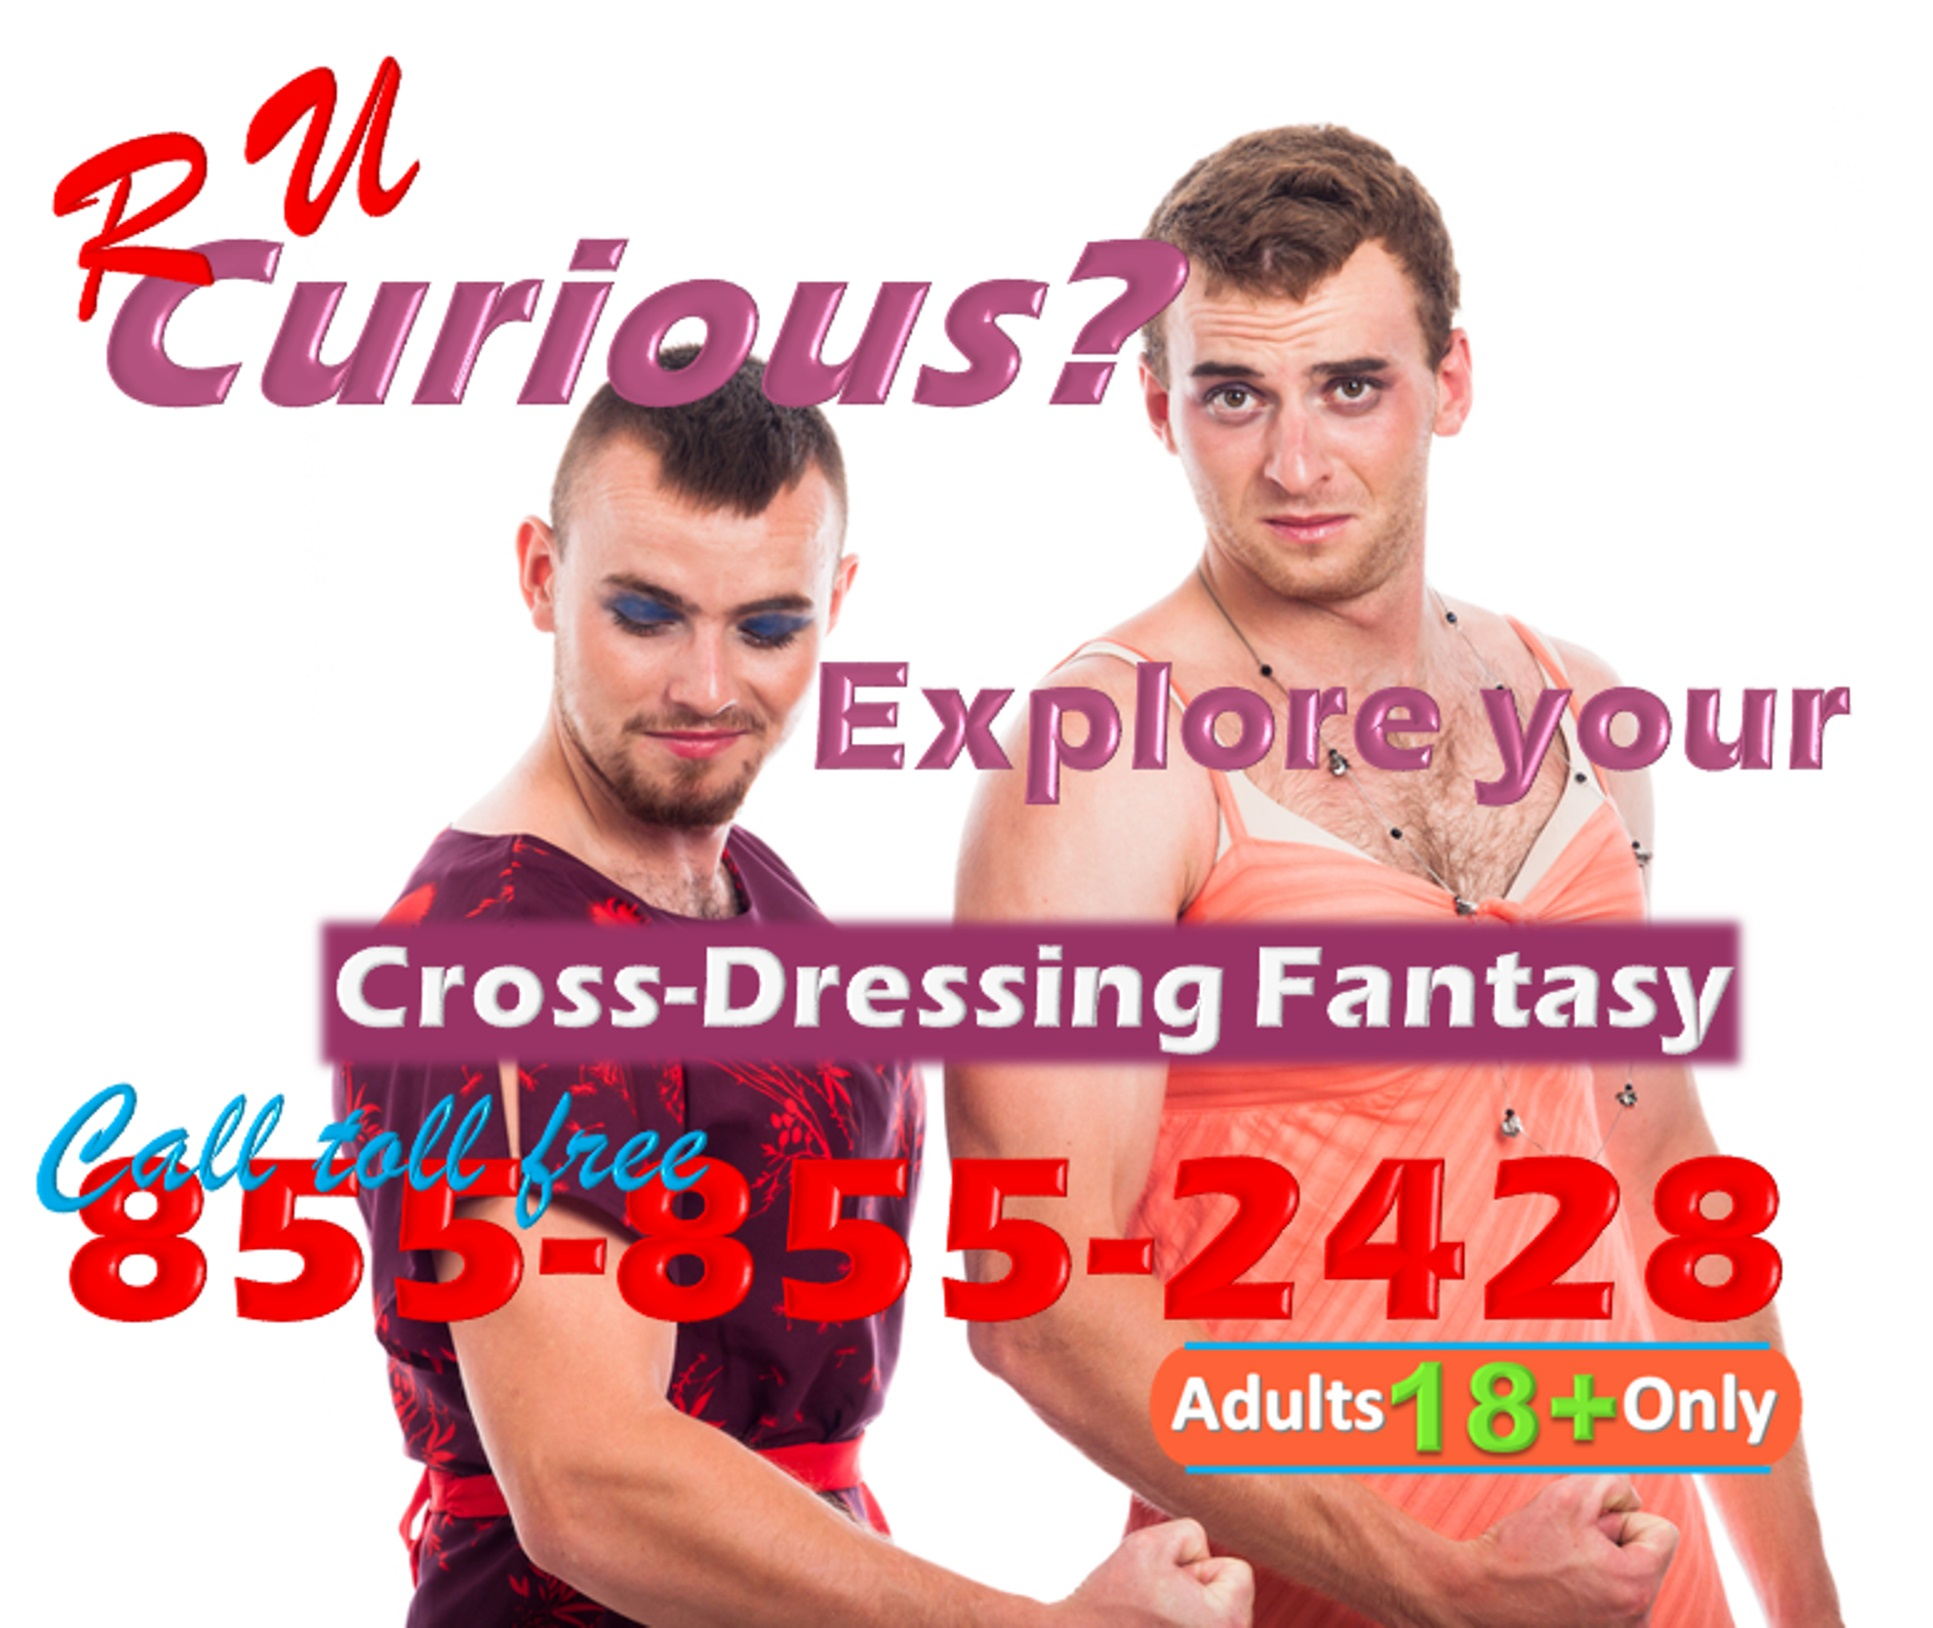 Free Gay Chat Line Phone Numbers